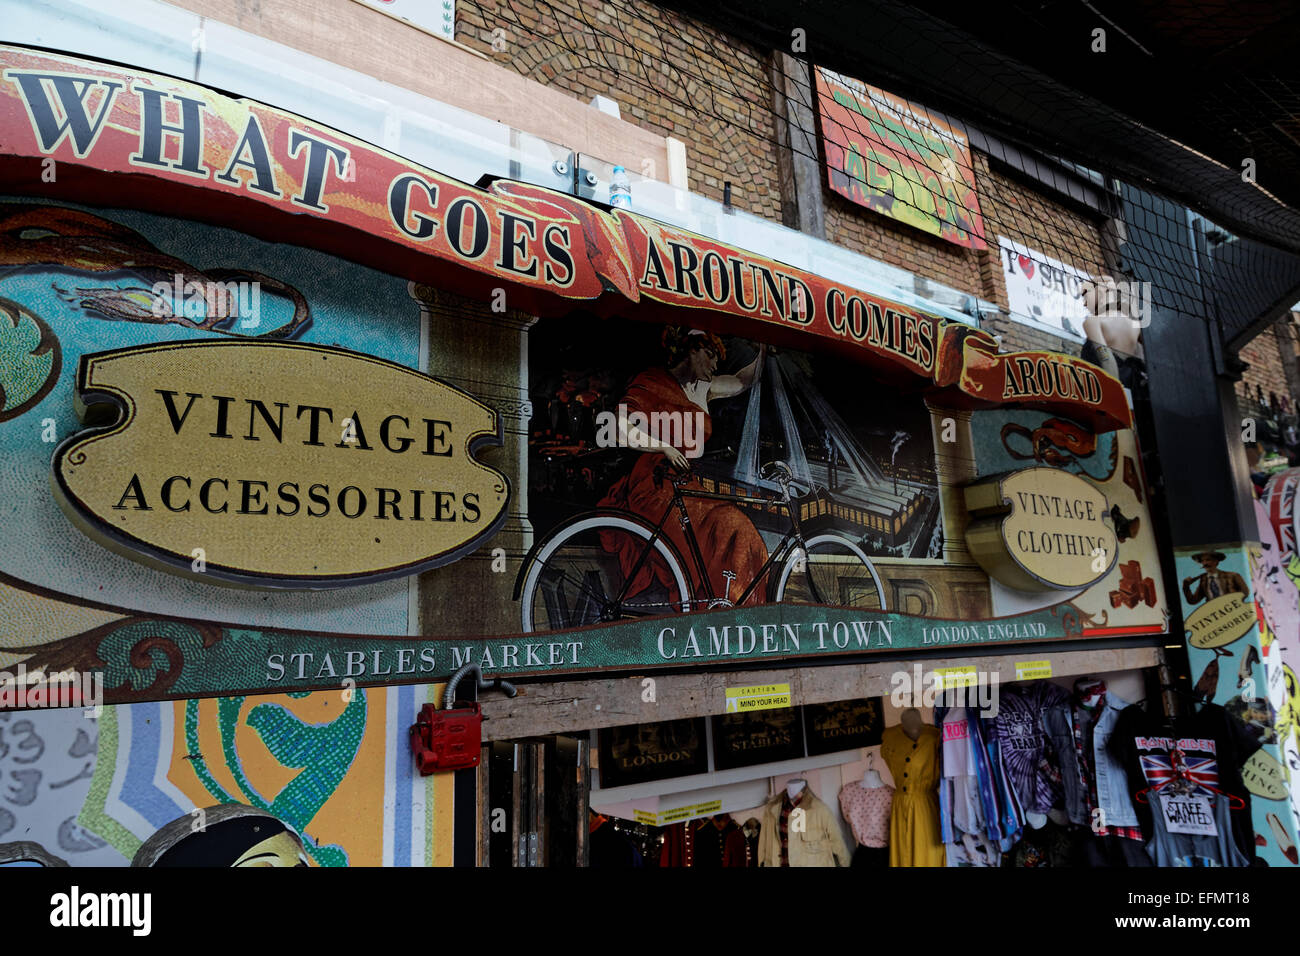 Shop frontage, Camden Stables Market, London, UK - Stock Image